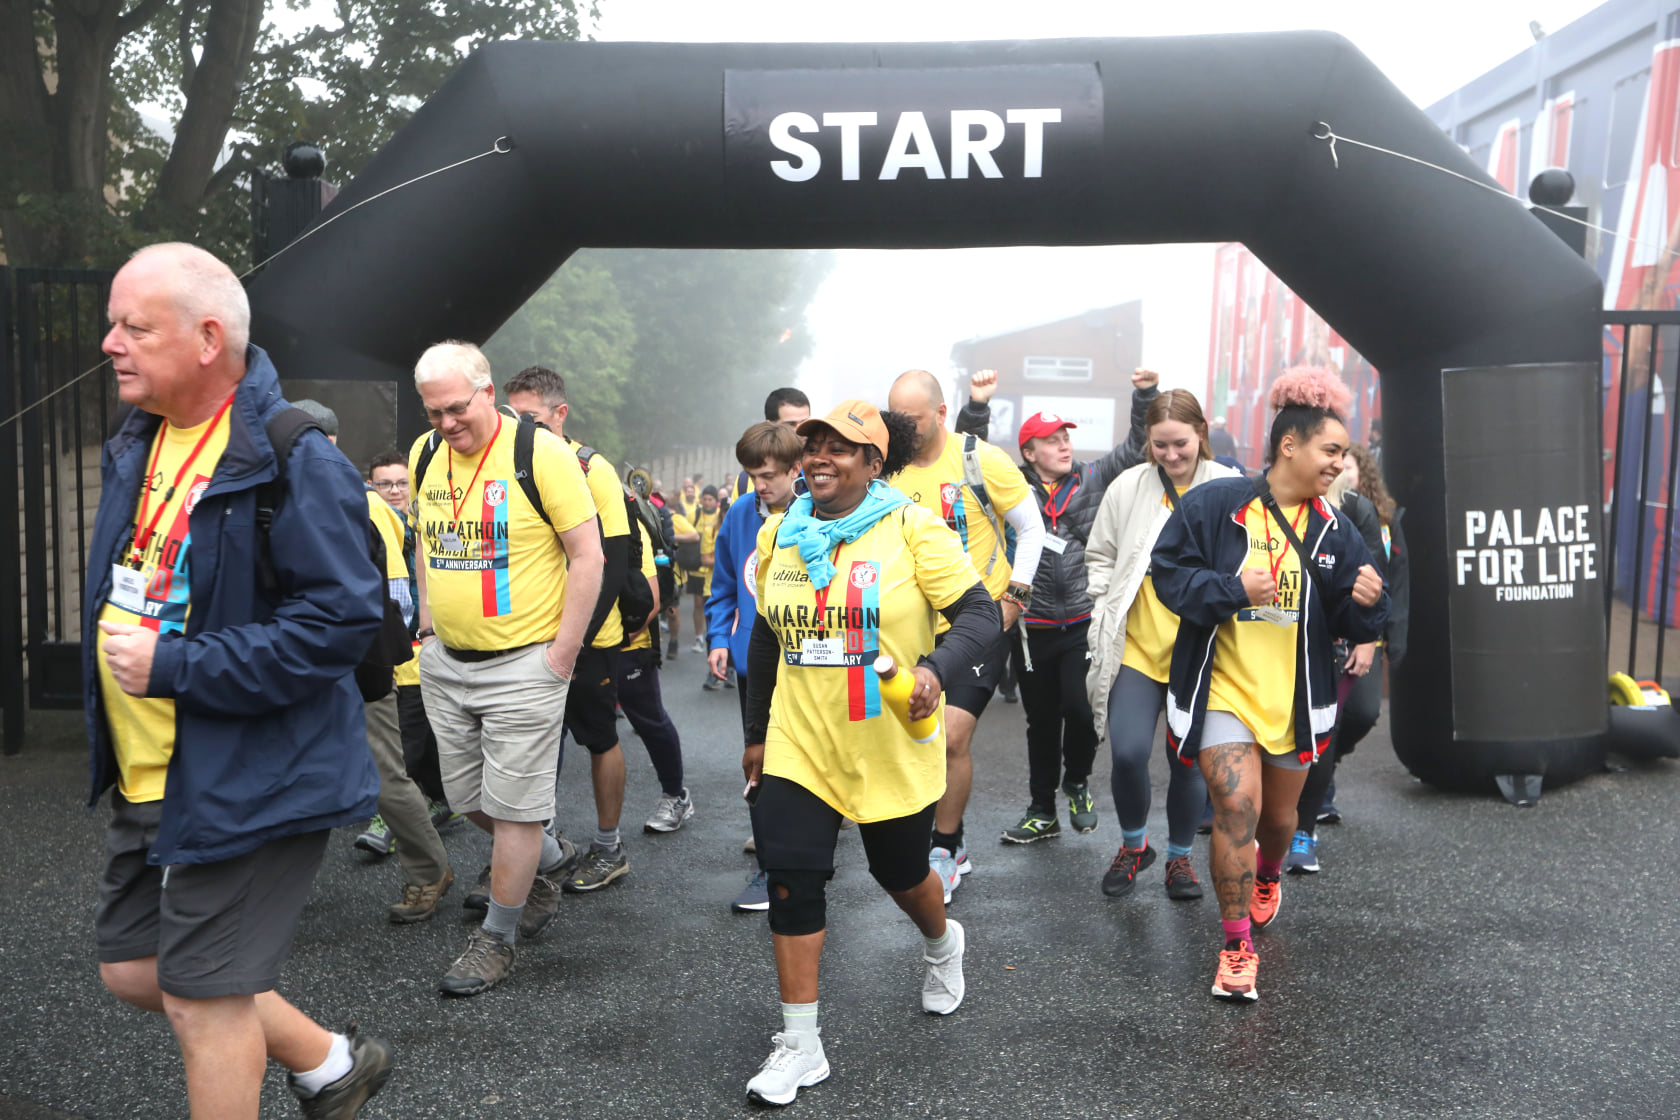 Go behind the scenes of Marathon March as Palace for Life approach target